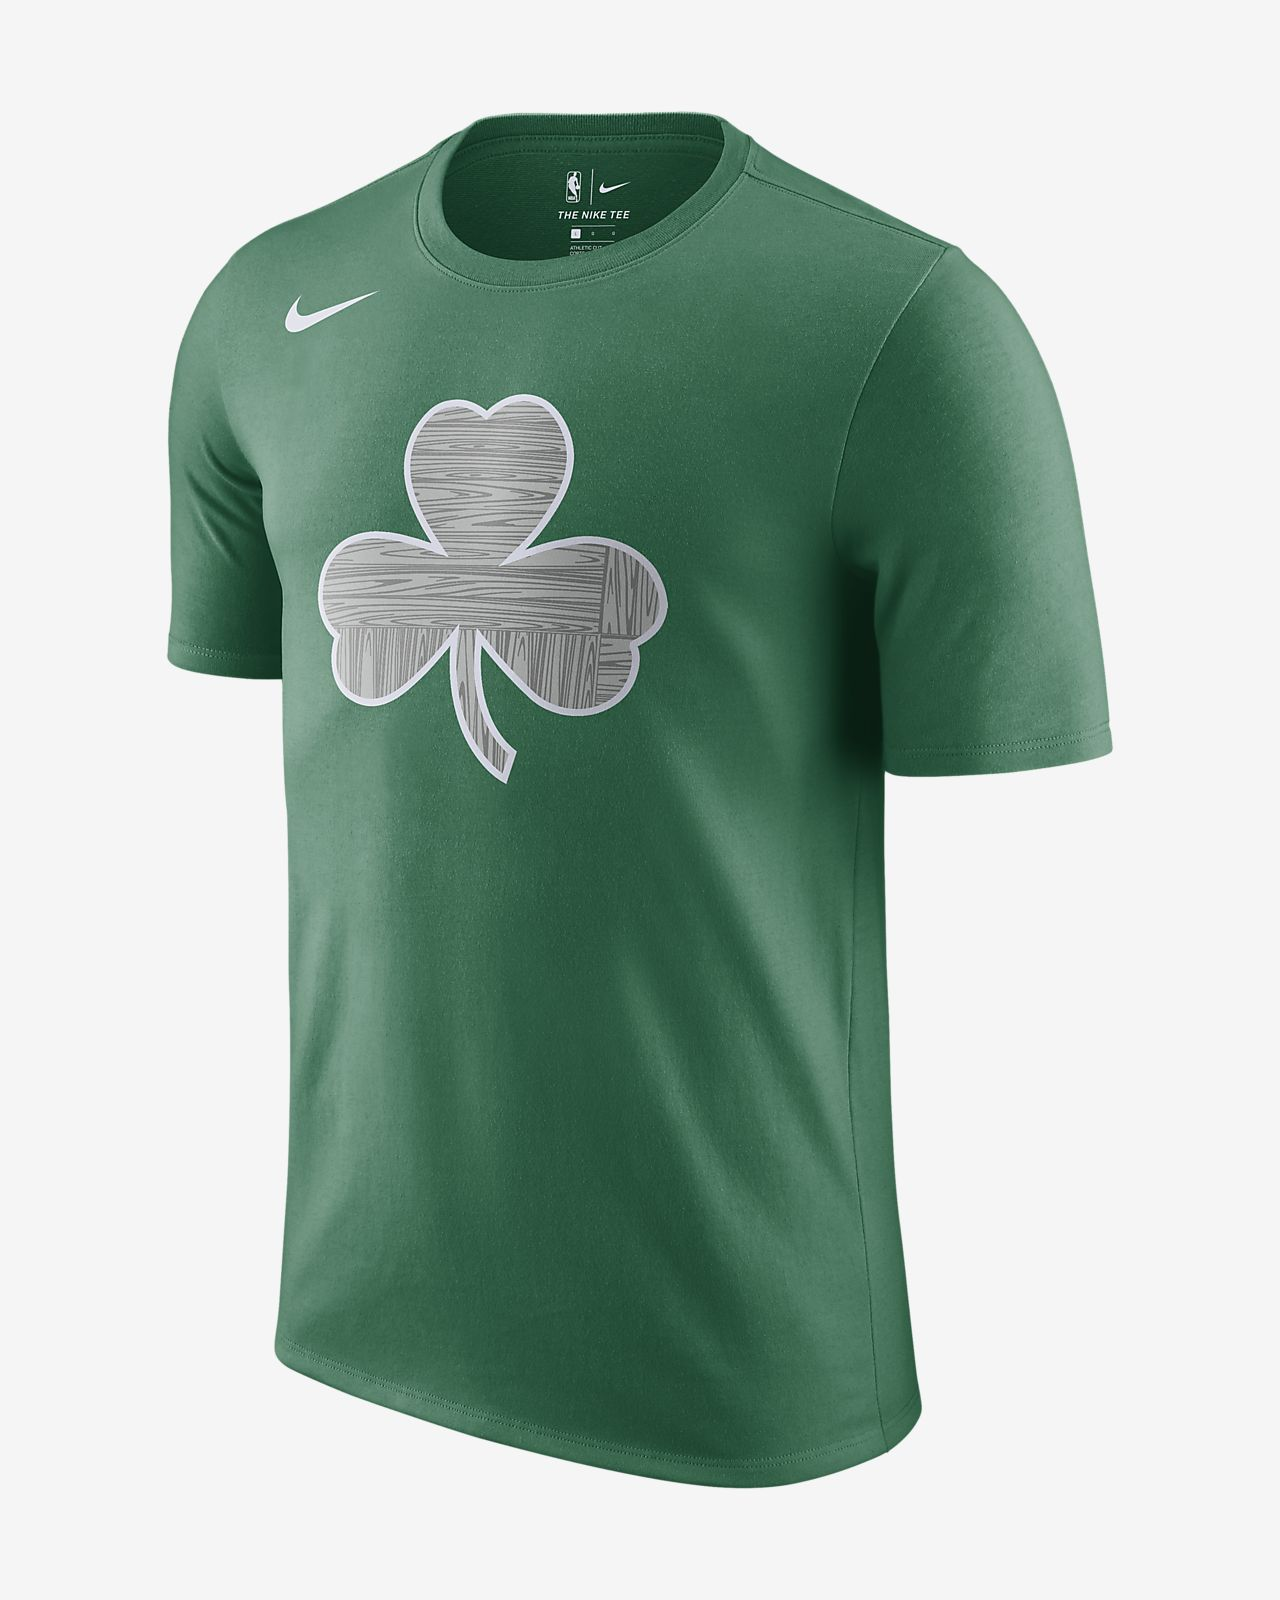 Boston Celtics City Edition Nike Dry 男款 NBA T 恤